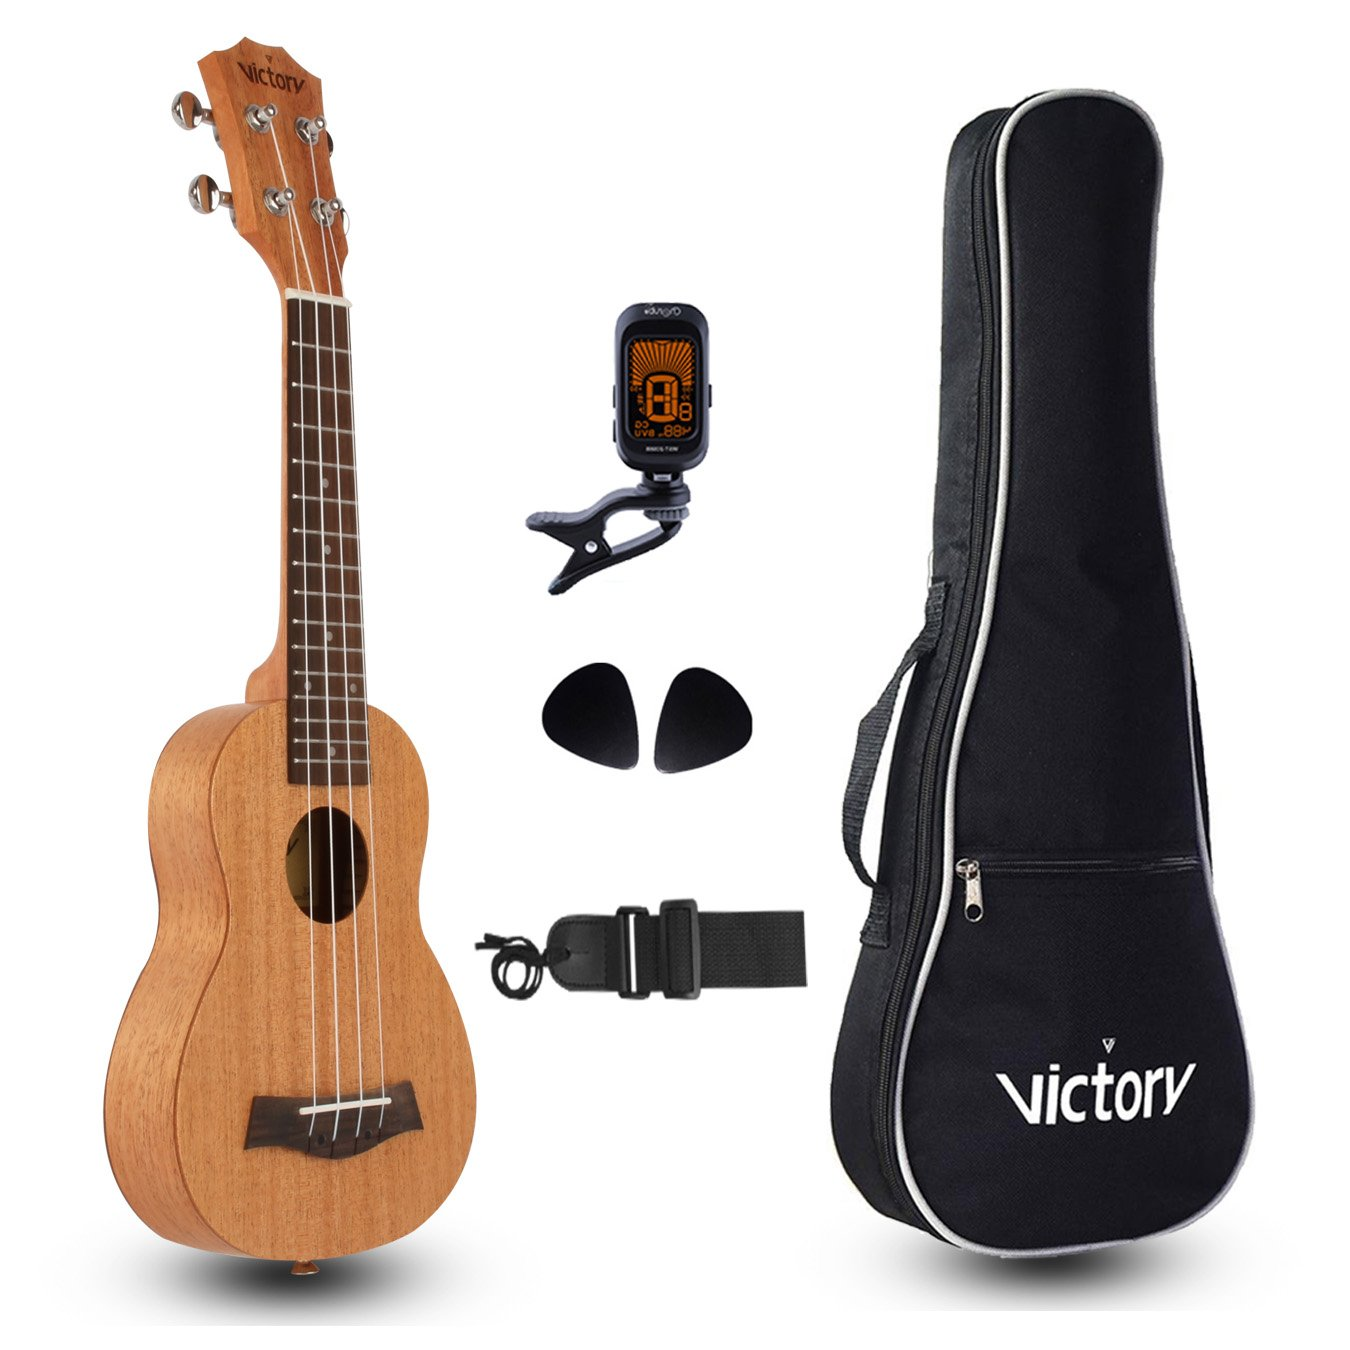 CYC Music Soprano Ukulele 21 Inch Mahogany Aquila String, Beginner Kit Tuner Gig Bag Straps and Picks - Black VI VICTORY